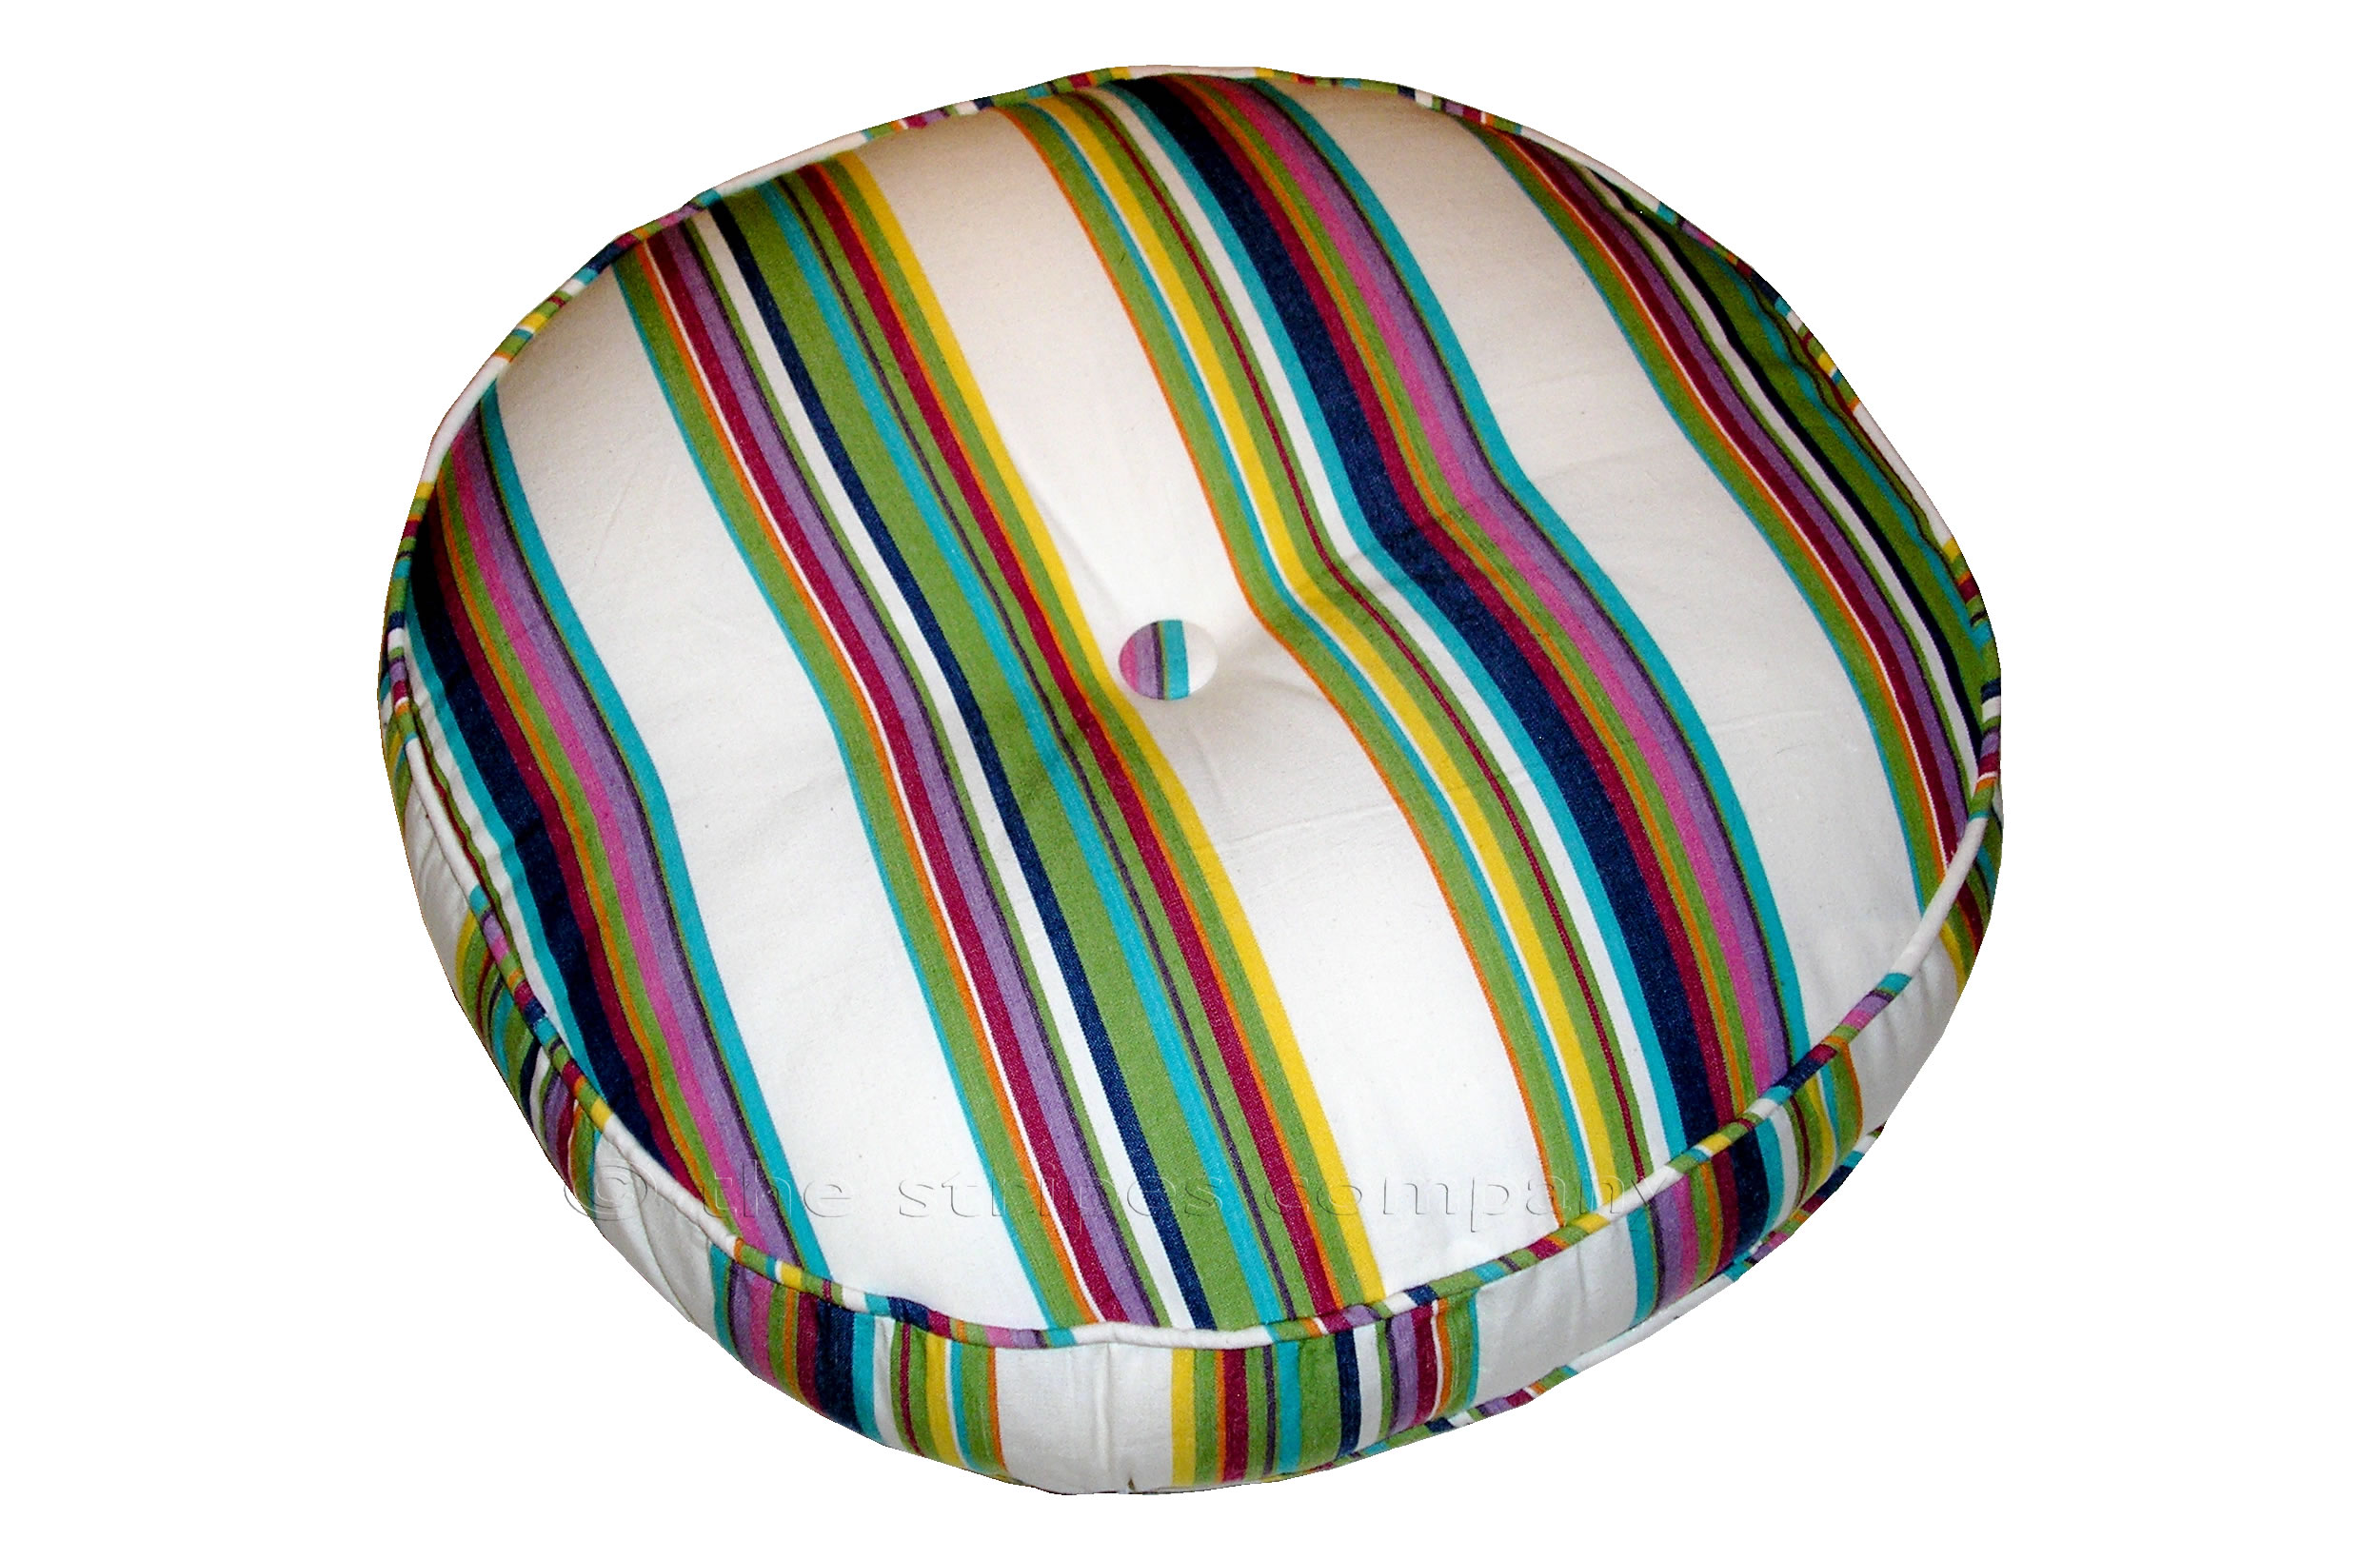 Ballooning Piped Cushion Round